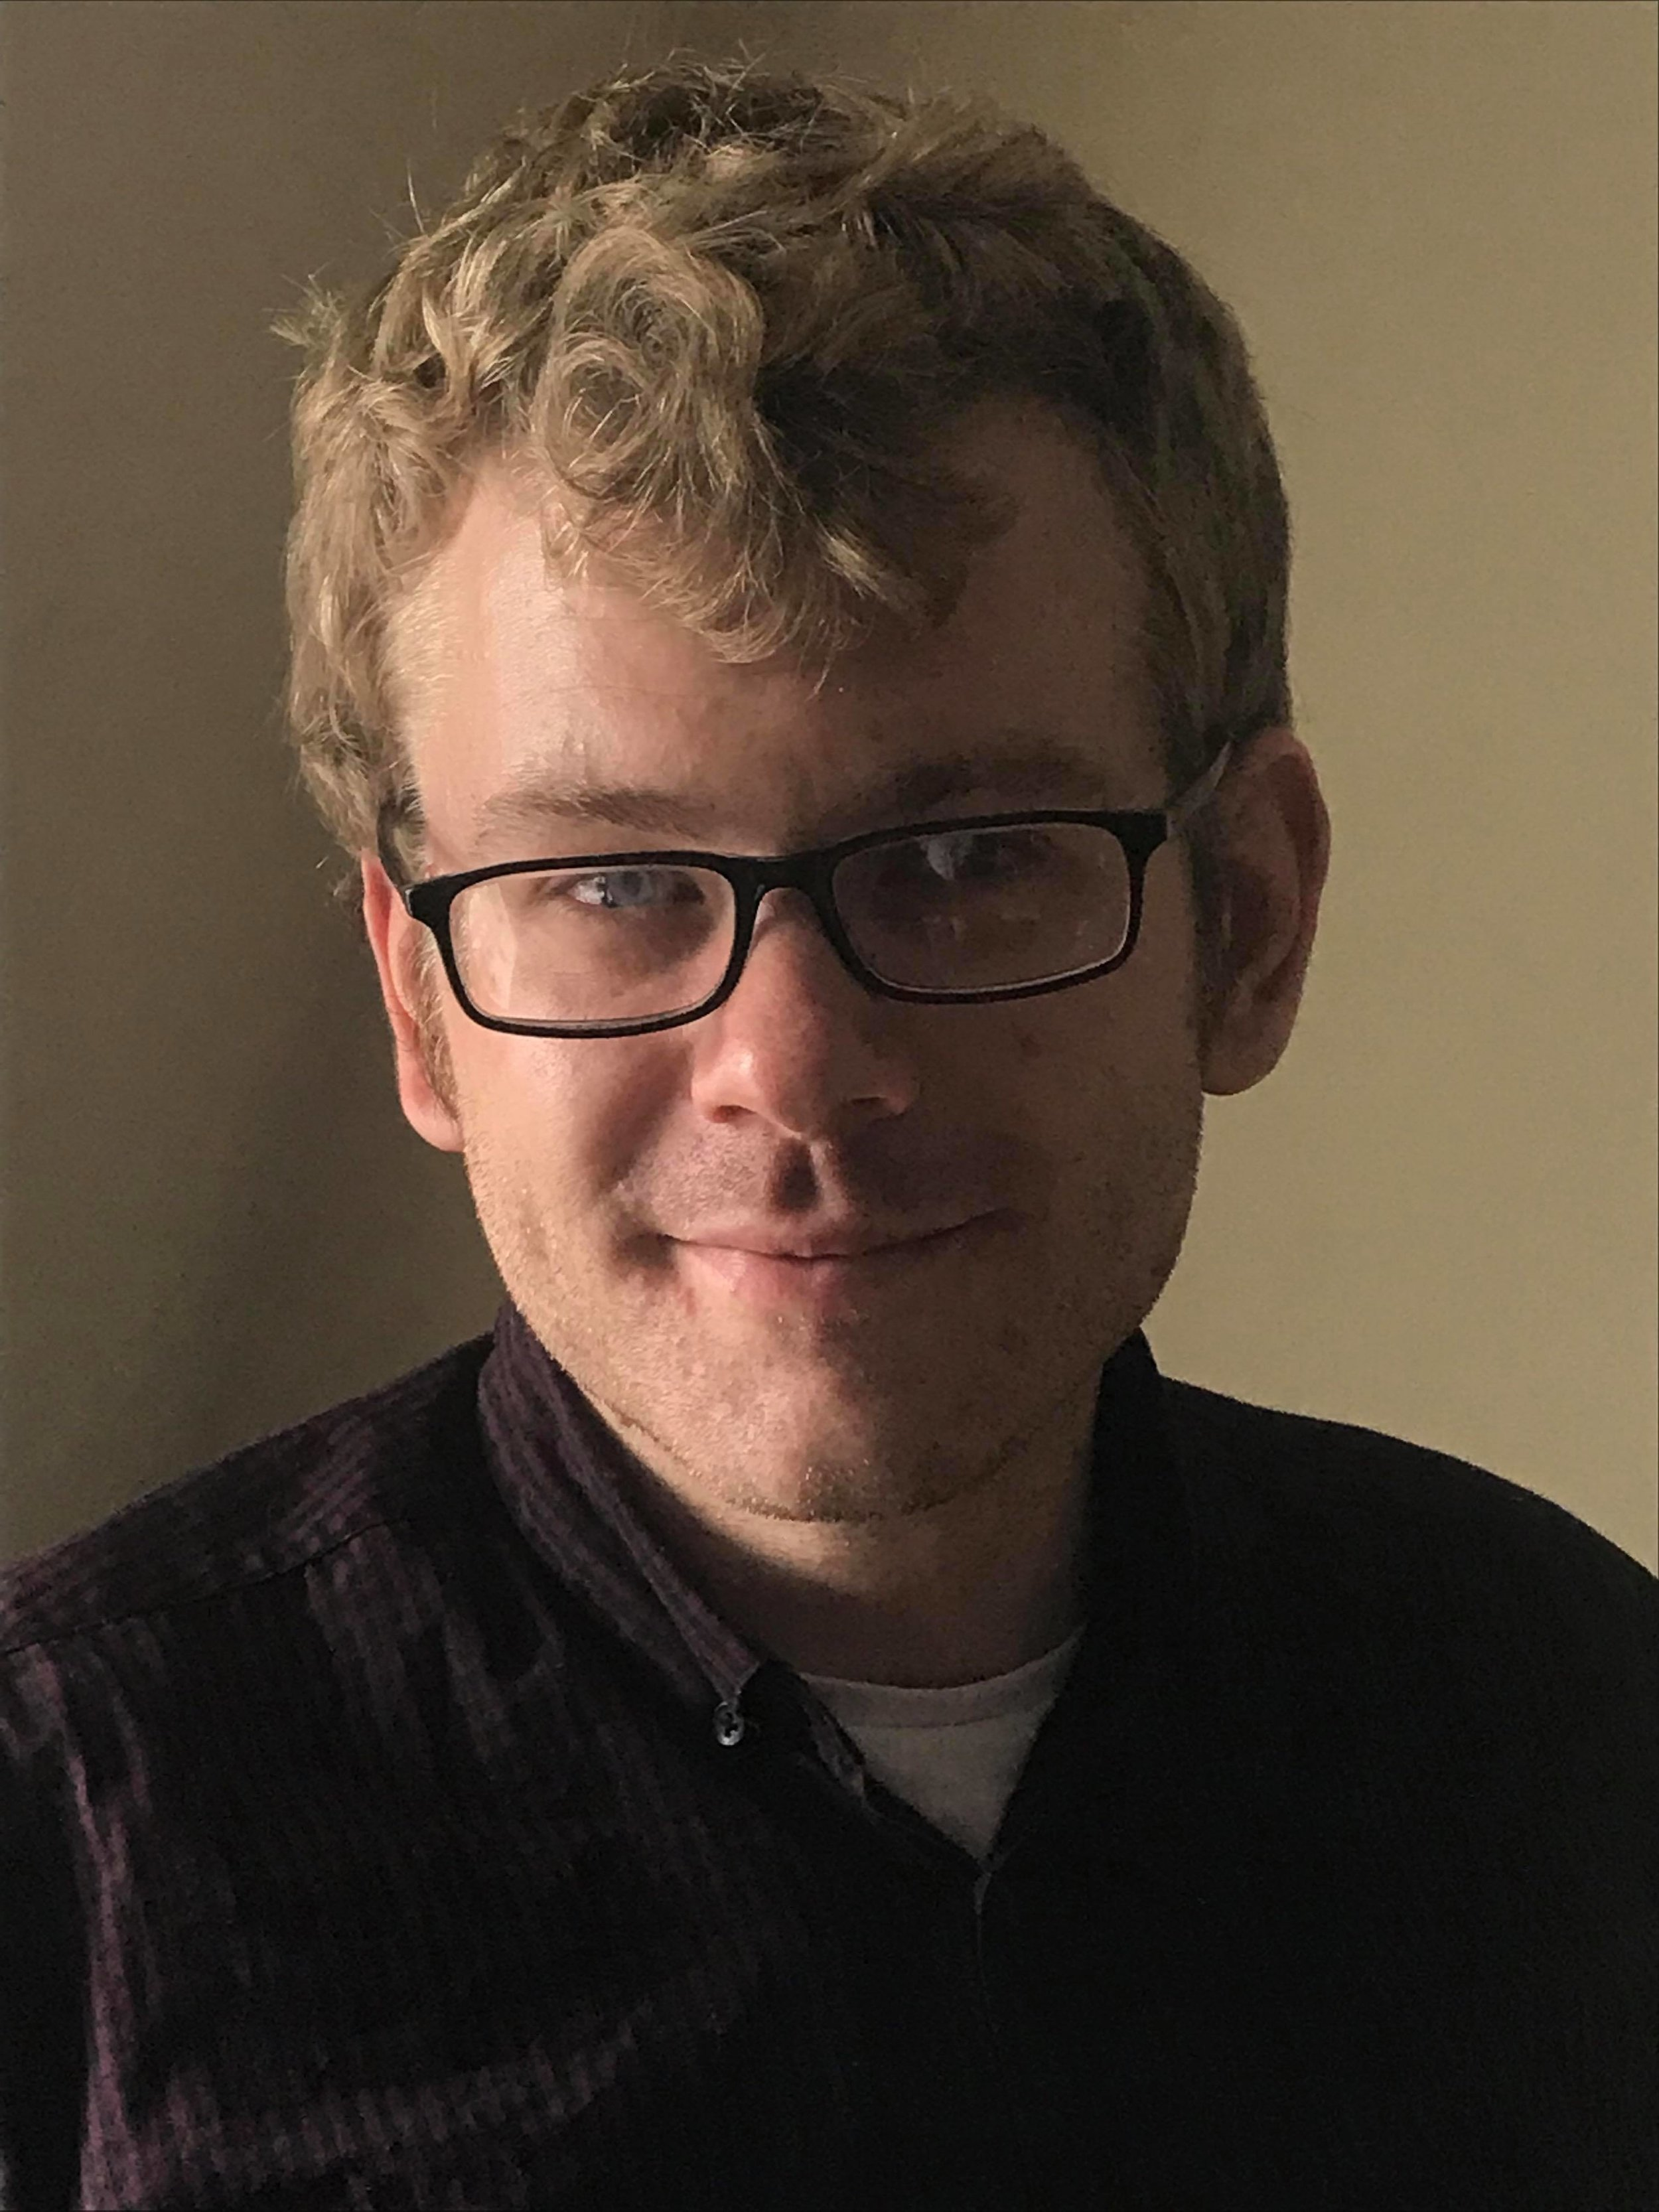 - Isaac Halstead - PhD studentMy PhD examines the social psychology of emerging genetic technologies. I am interested in understanding why some people embrace biological advances - such as gene editing - whereas others are more cautious or even outright against their use.